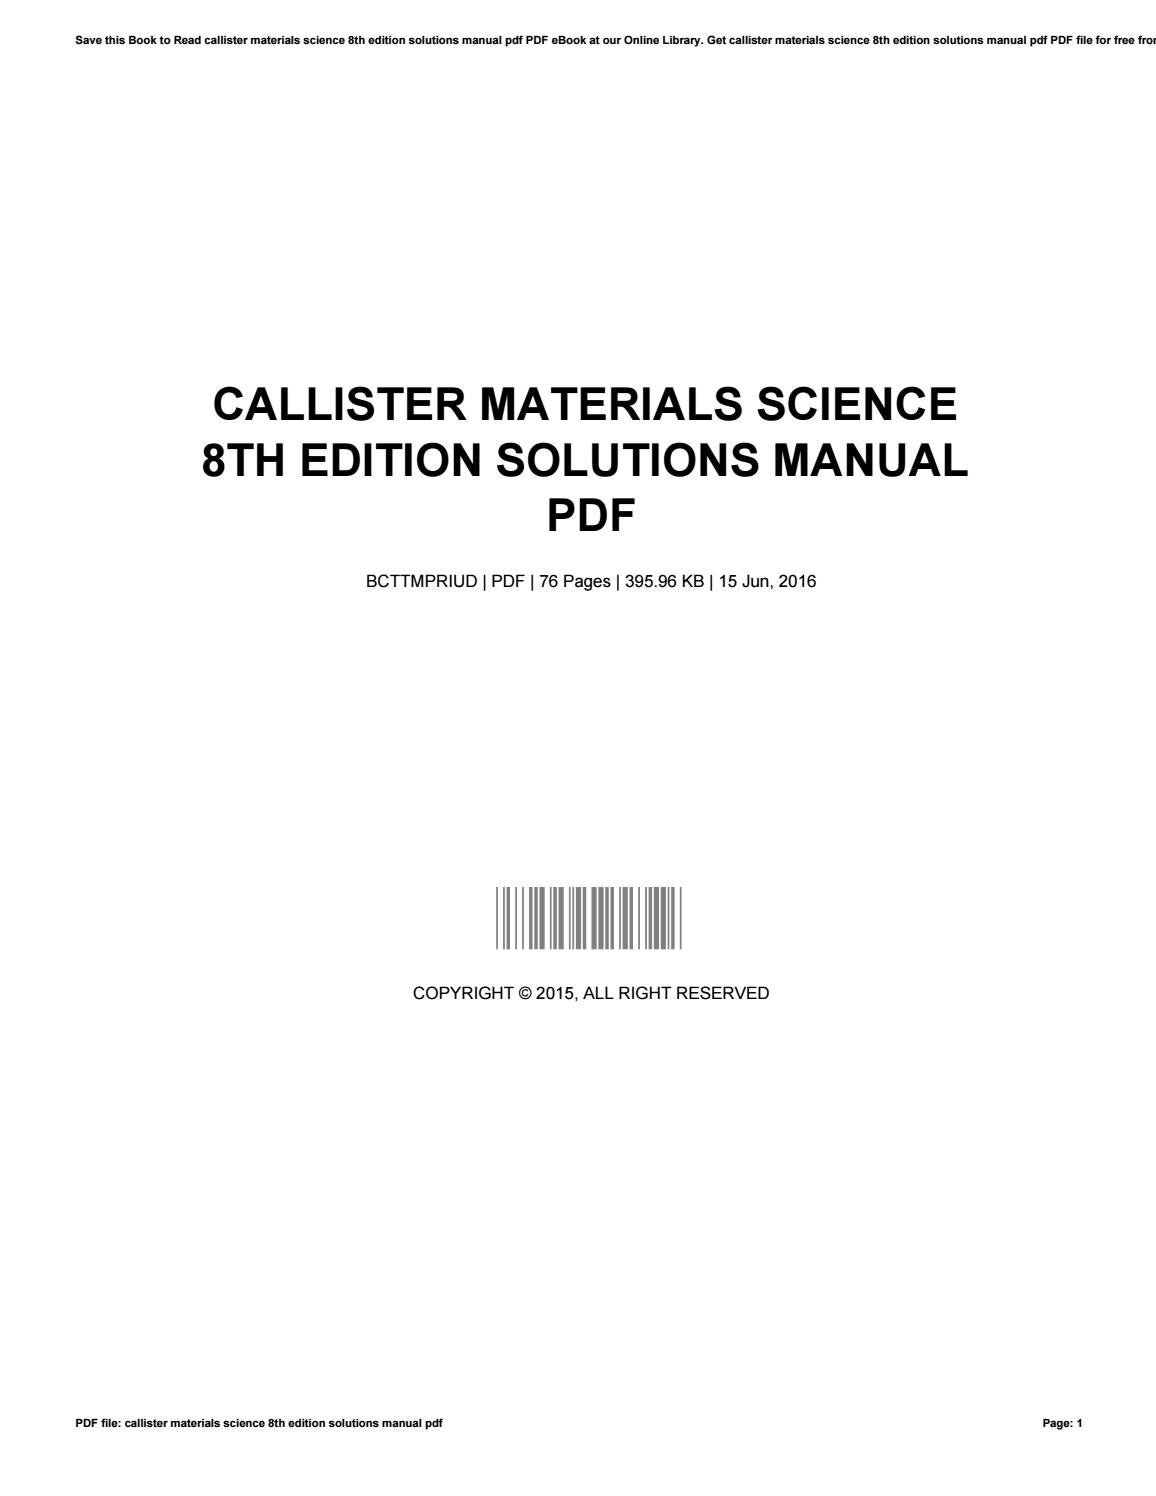 Callister materials science 8th edition solutions manual pdf by  JamesGidney4841 - issuu